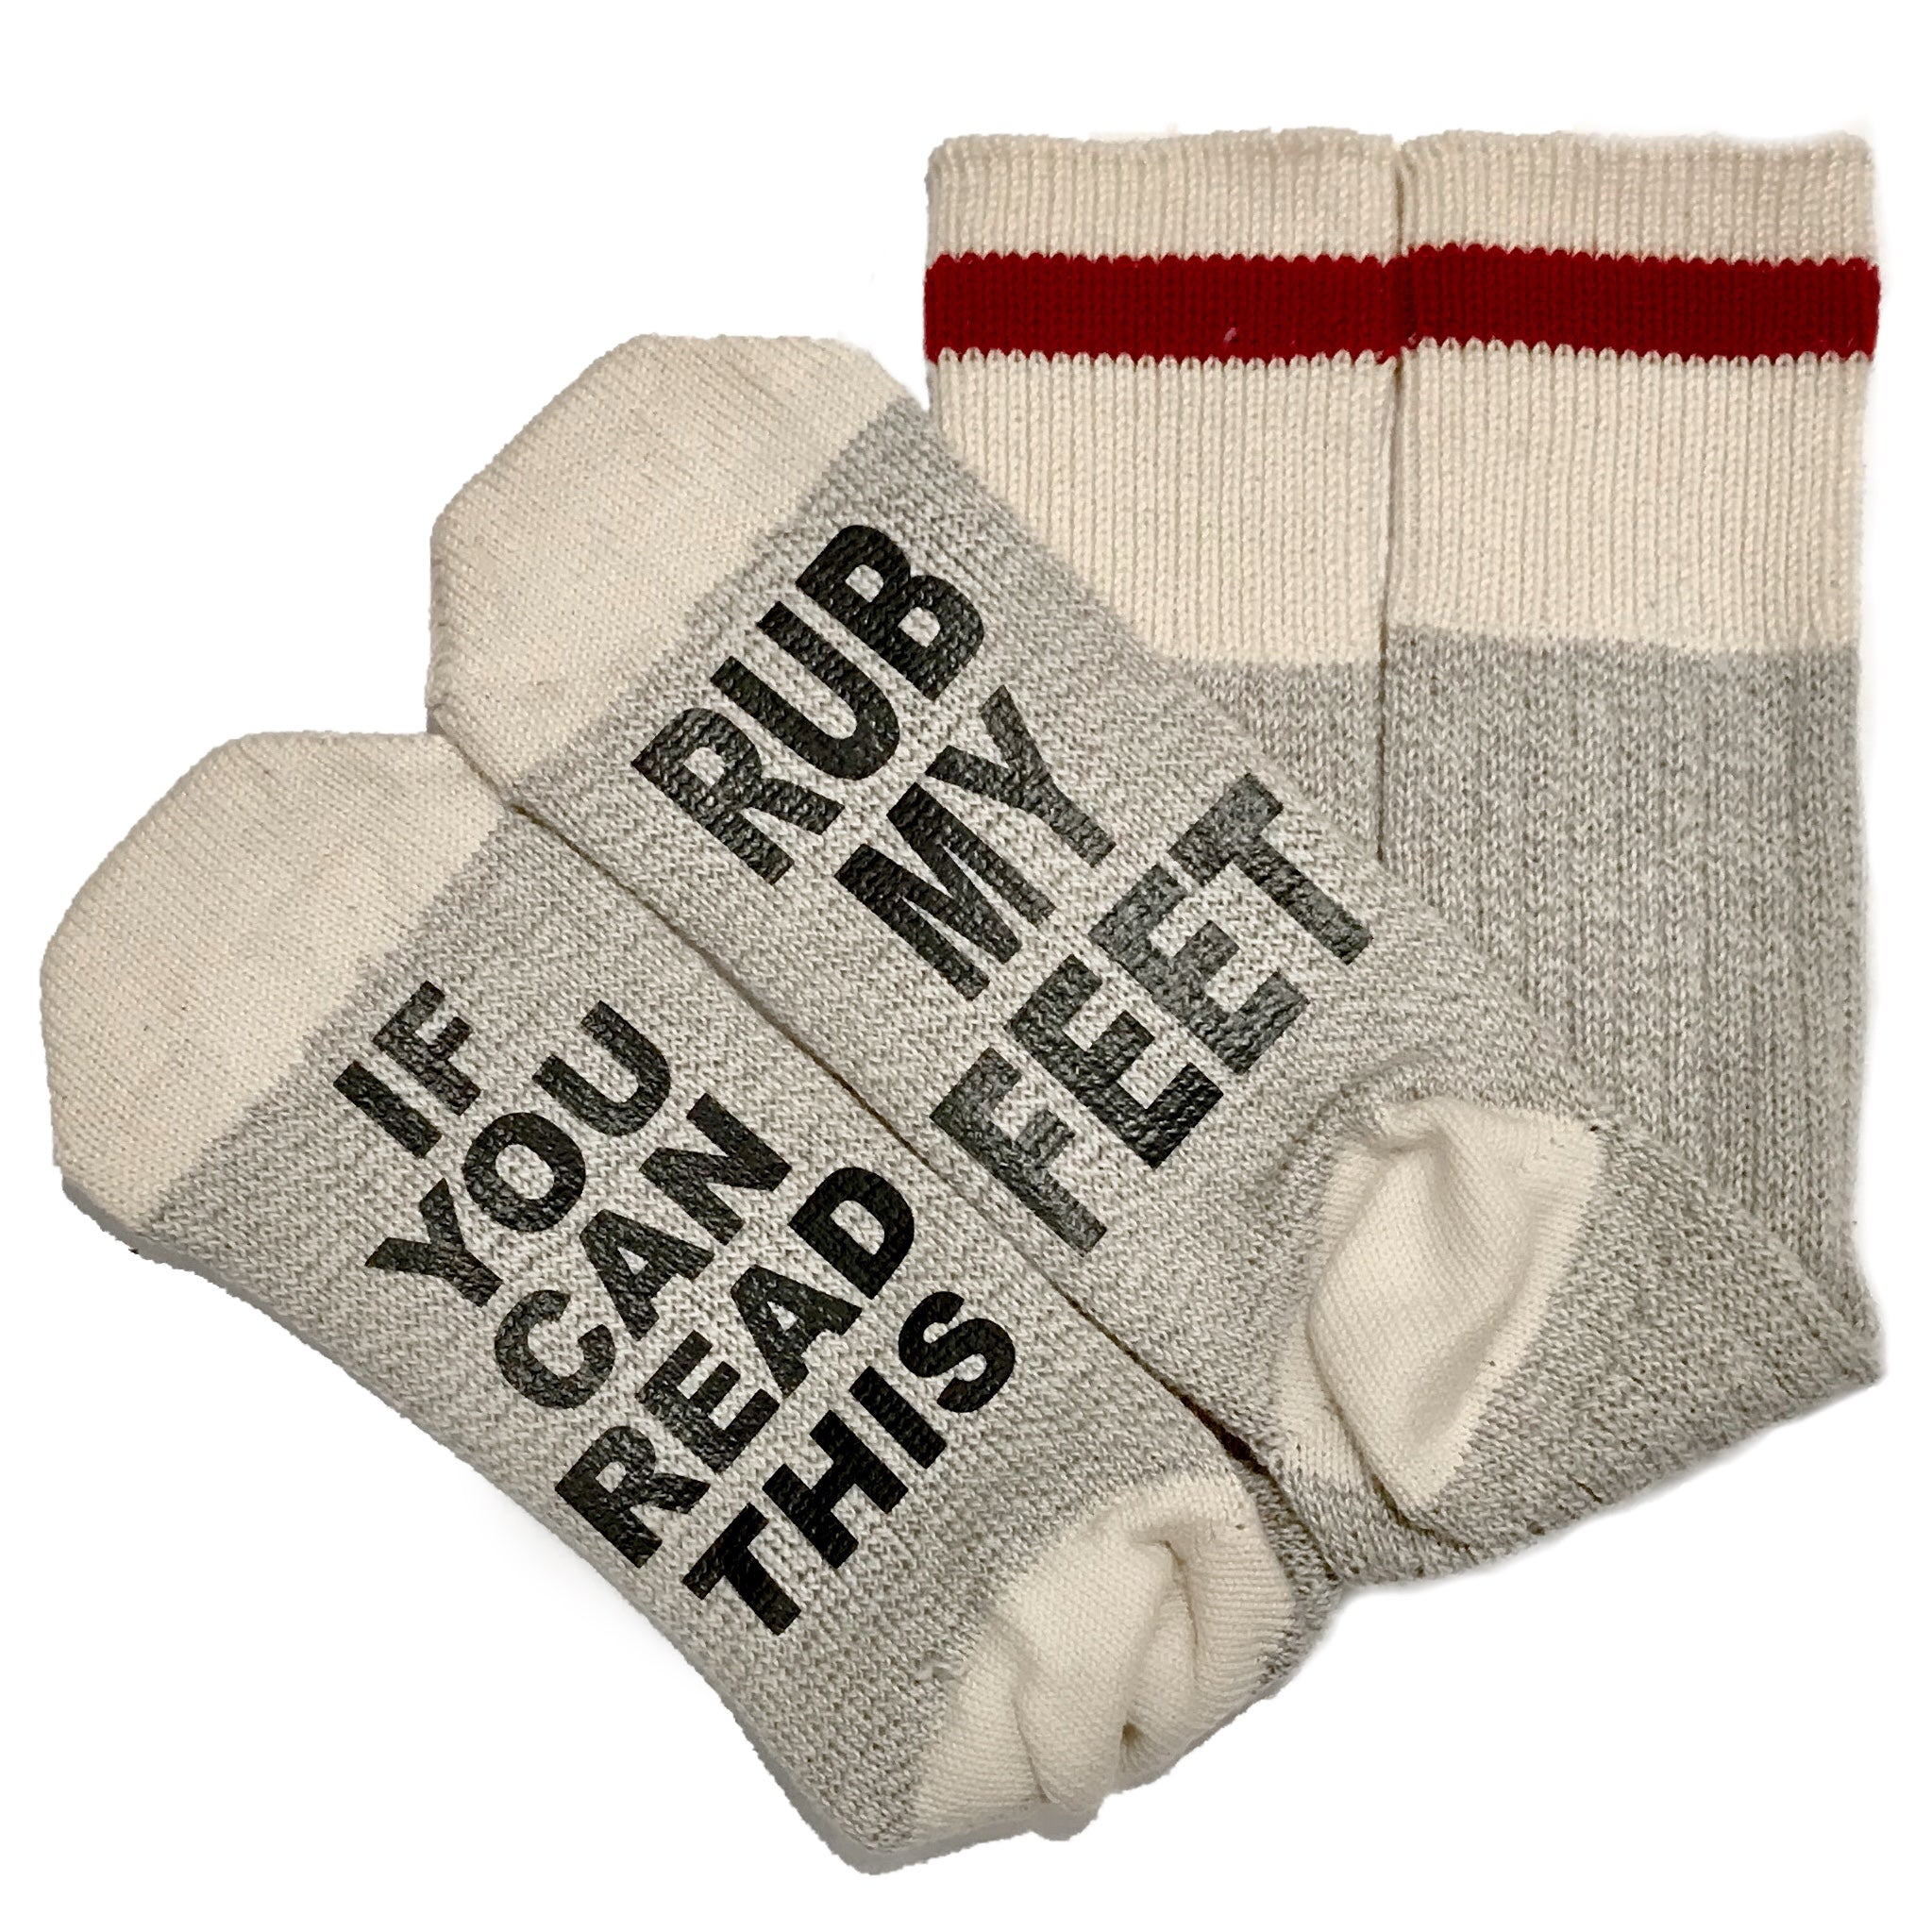 Talking Socks, If You Can Read This Rub My Feet